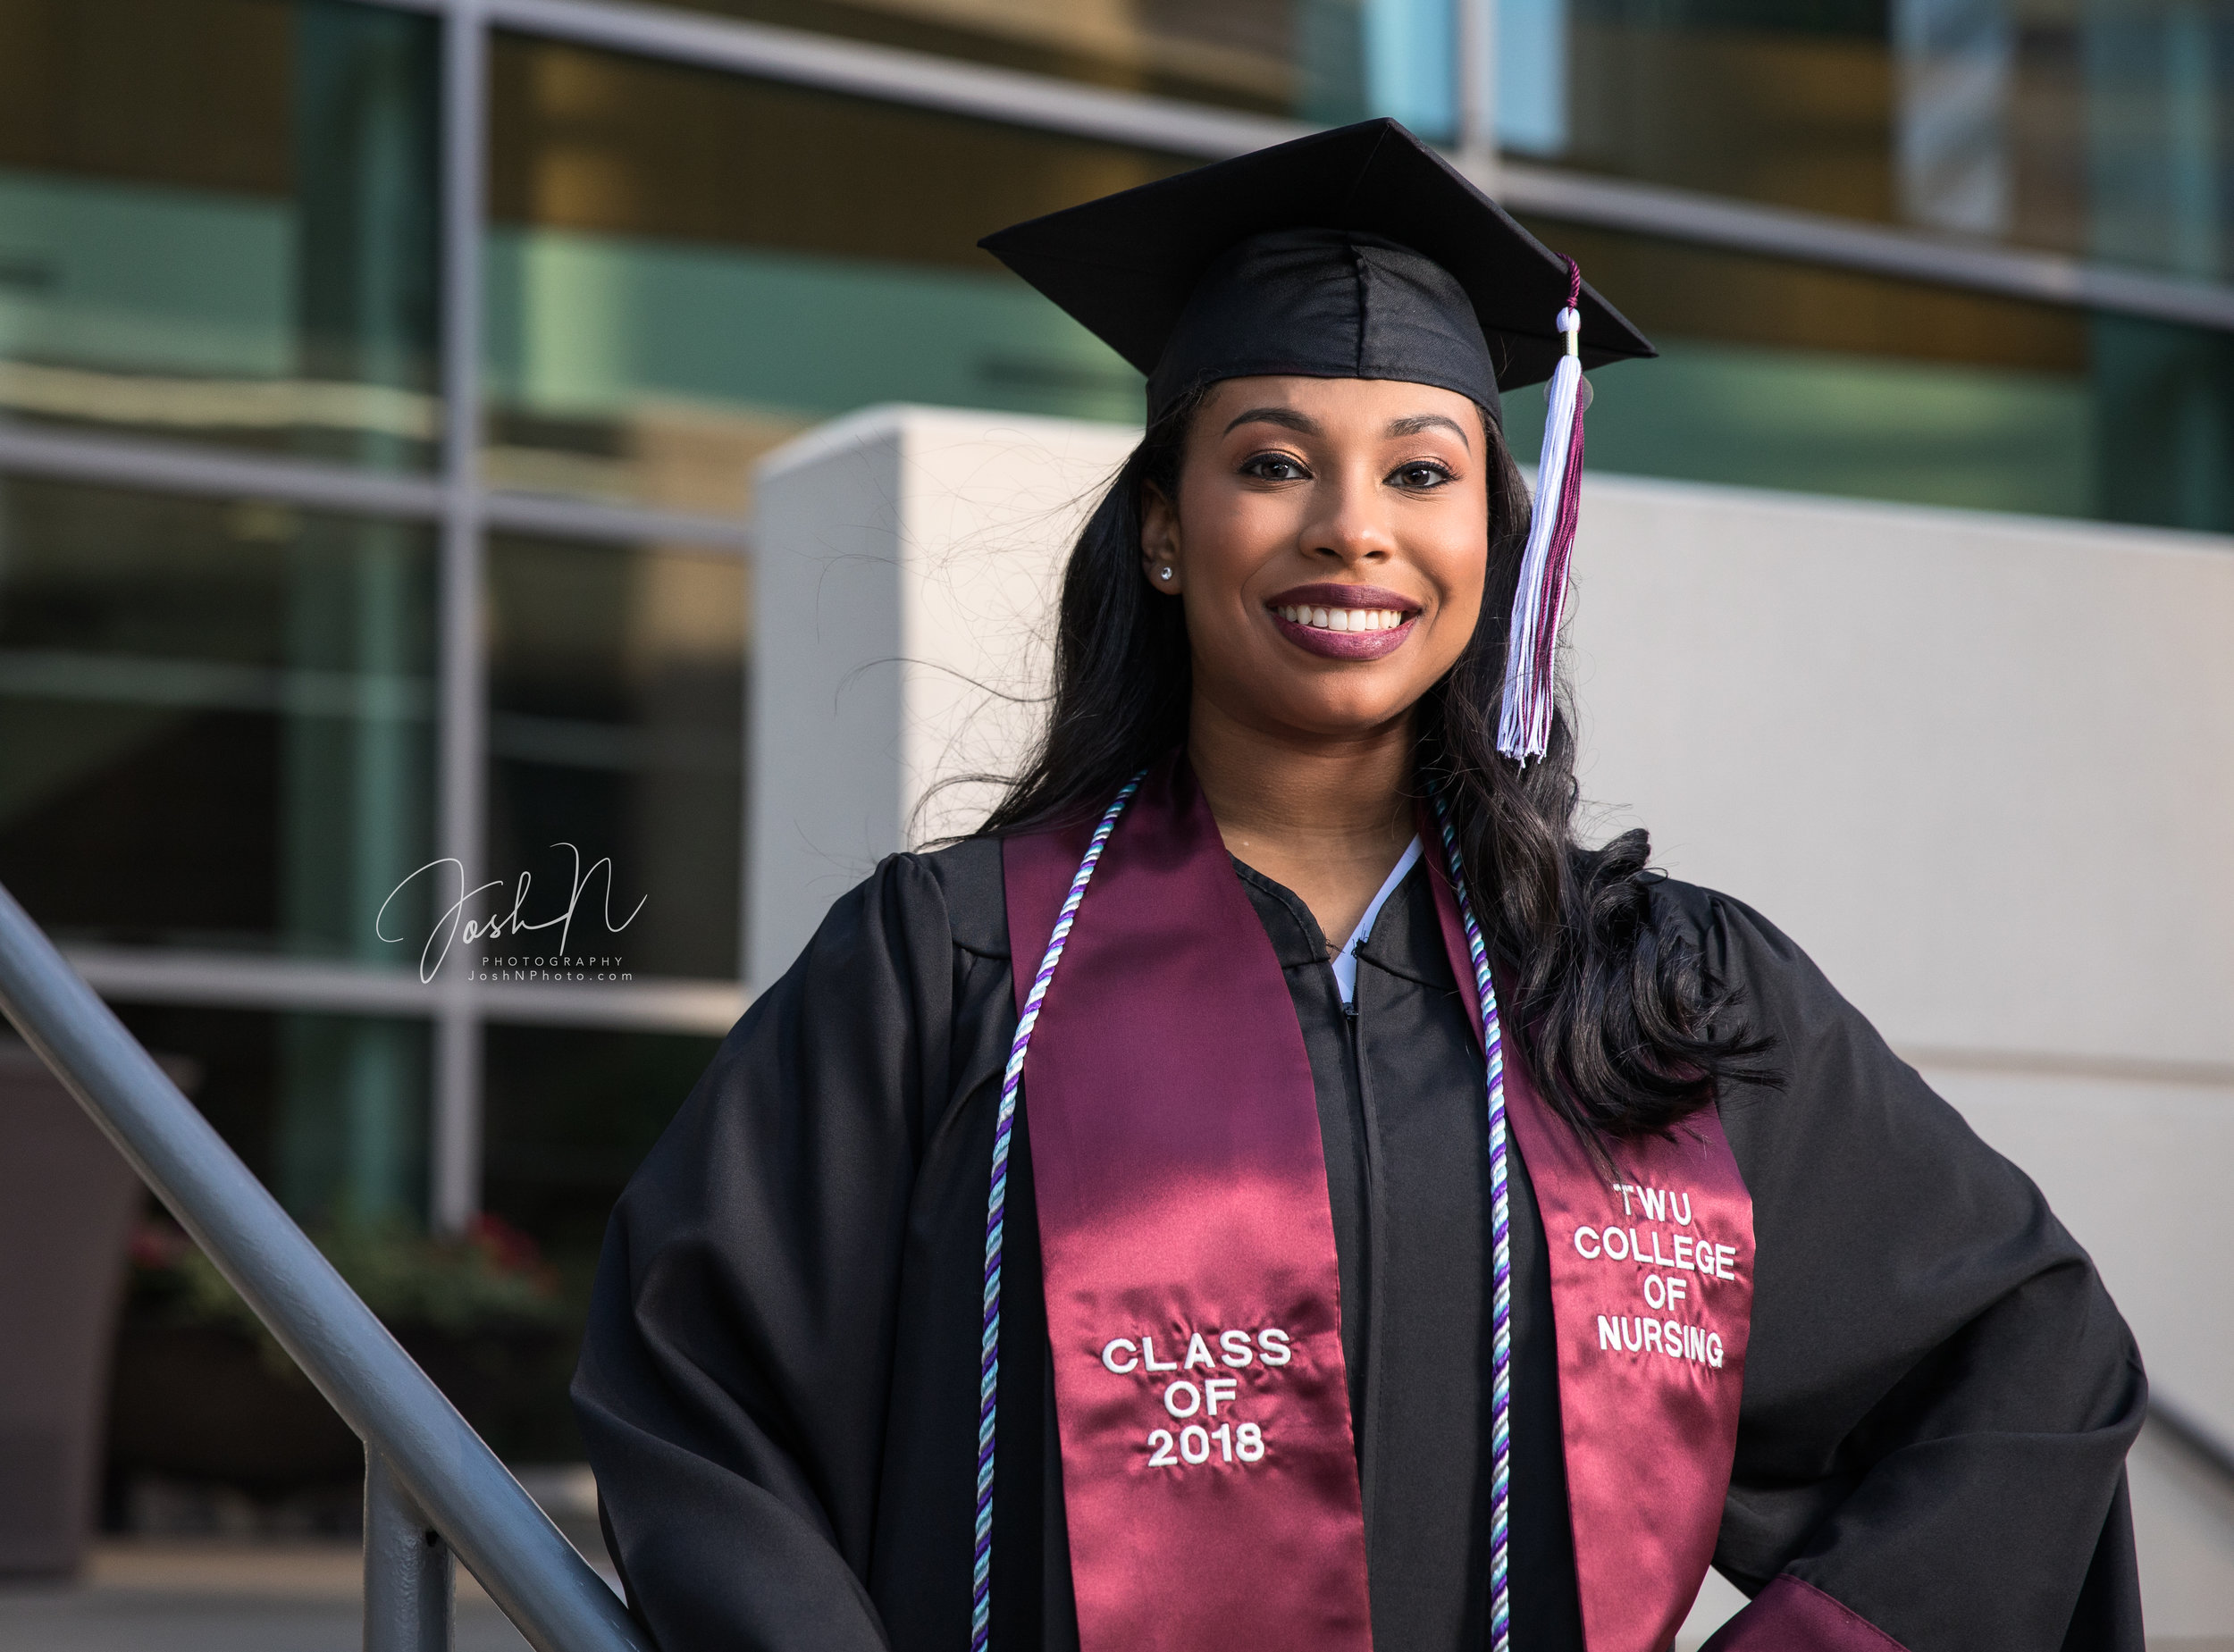 Texas Women's Univeristy Nursing School Graduation Photos3.jpg